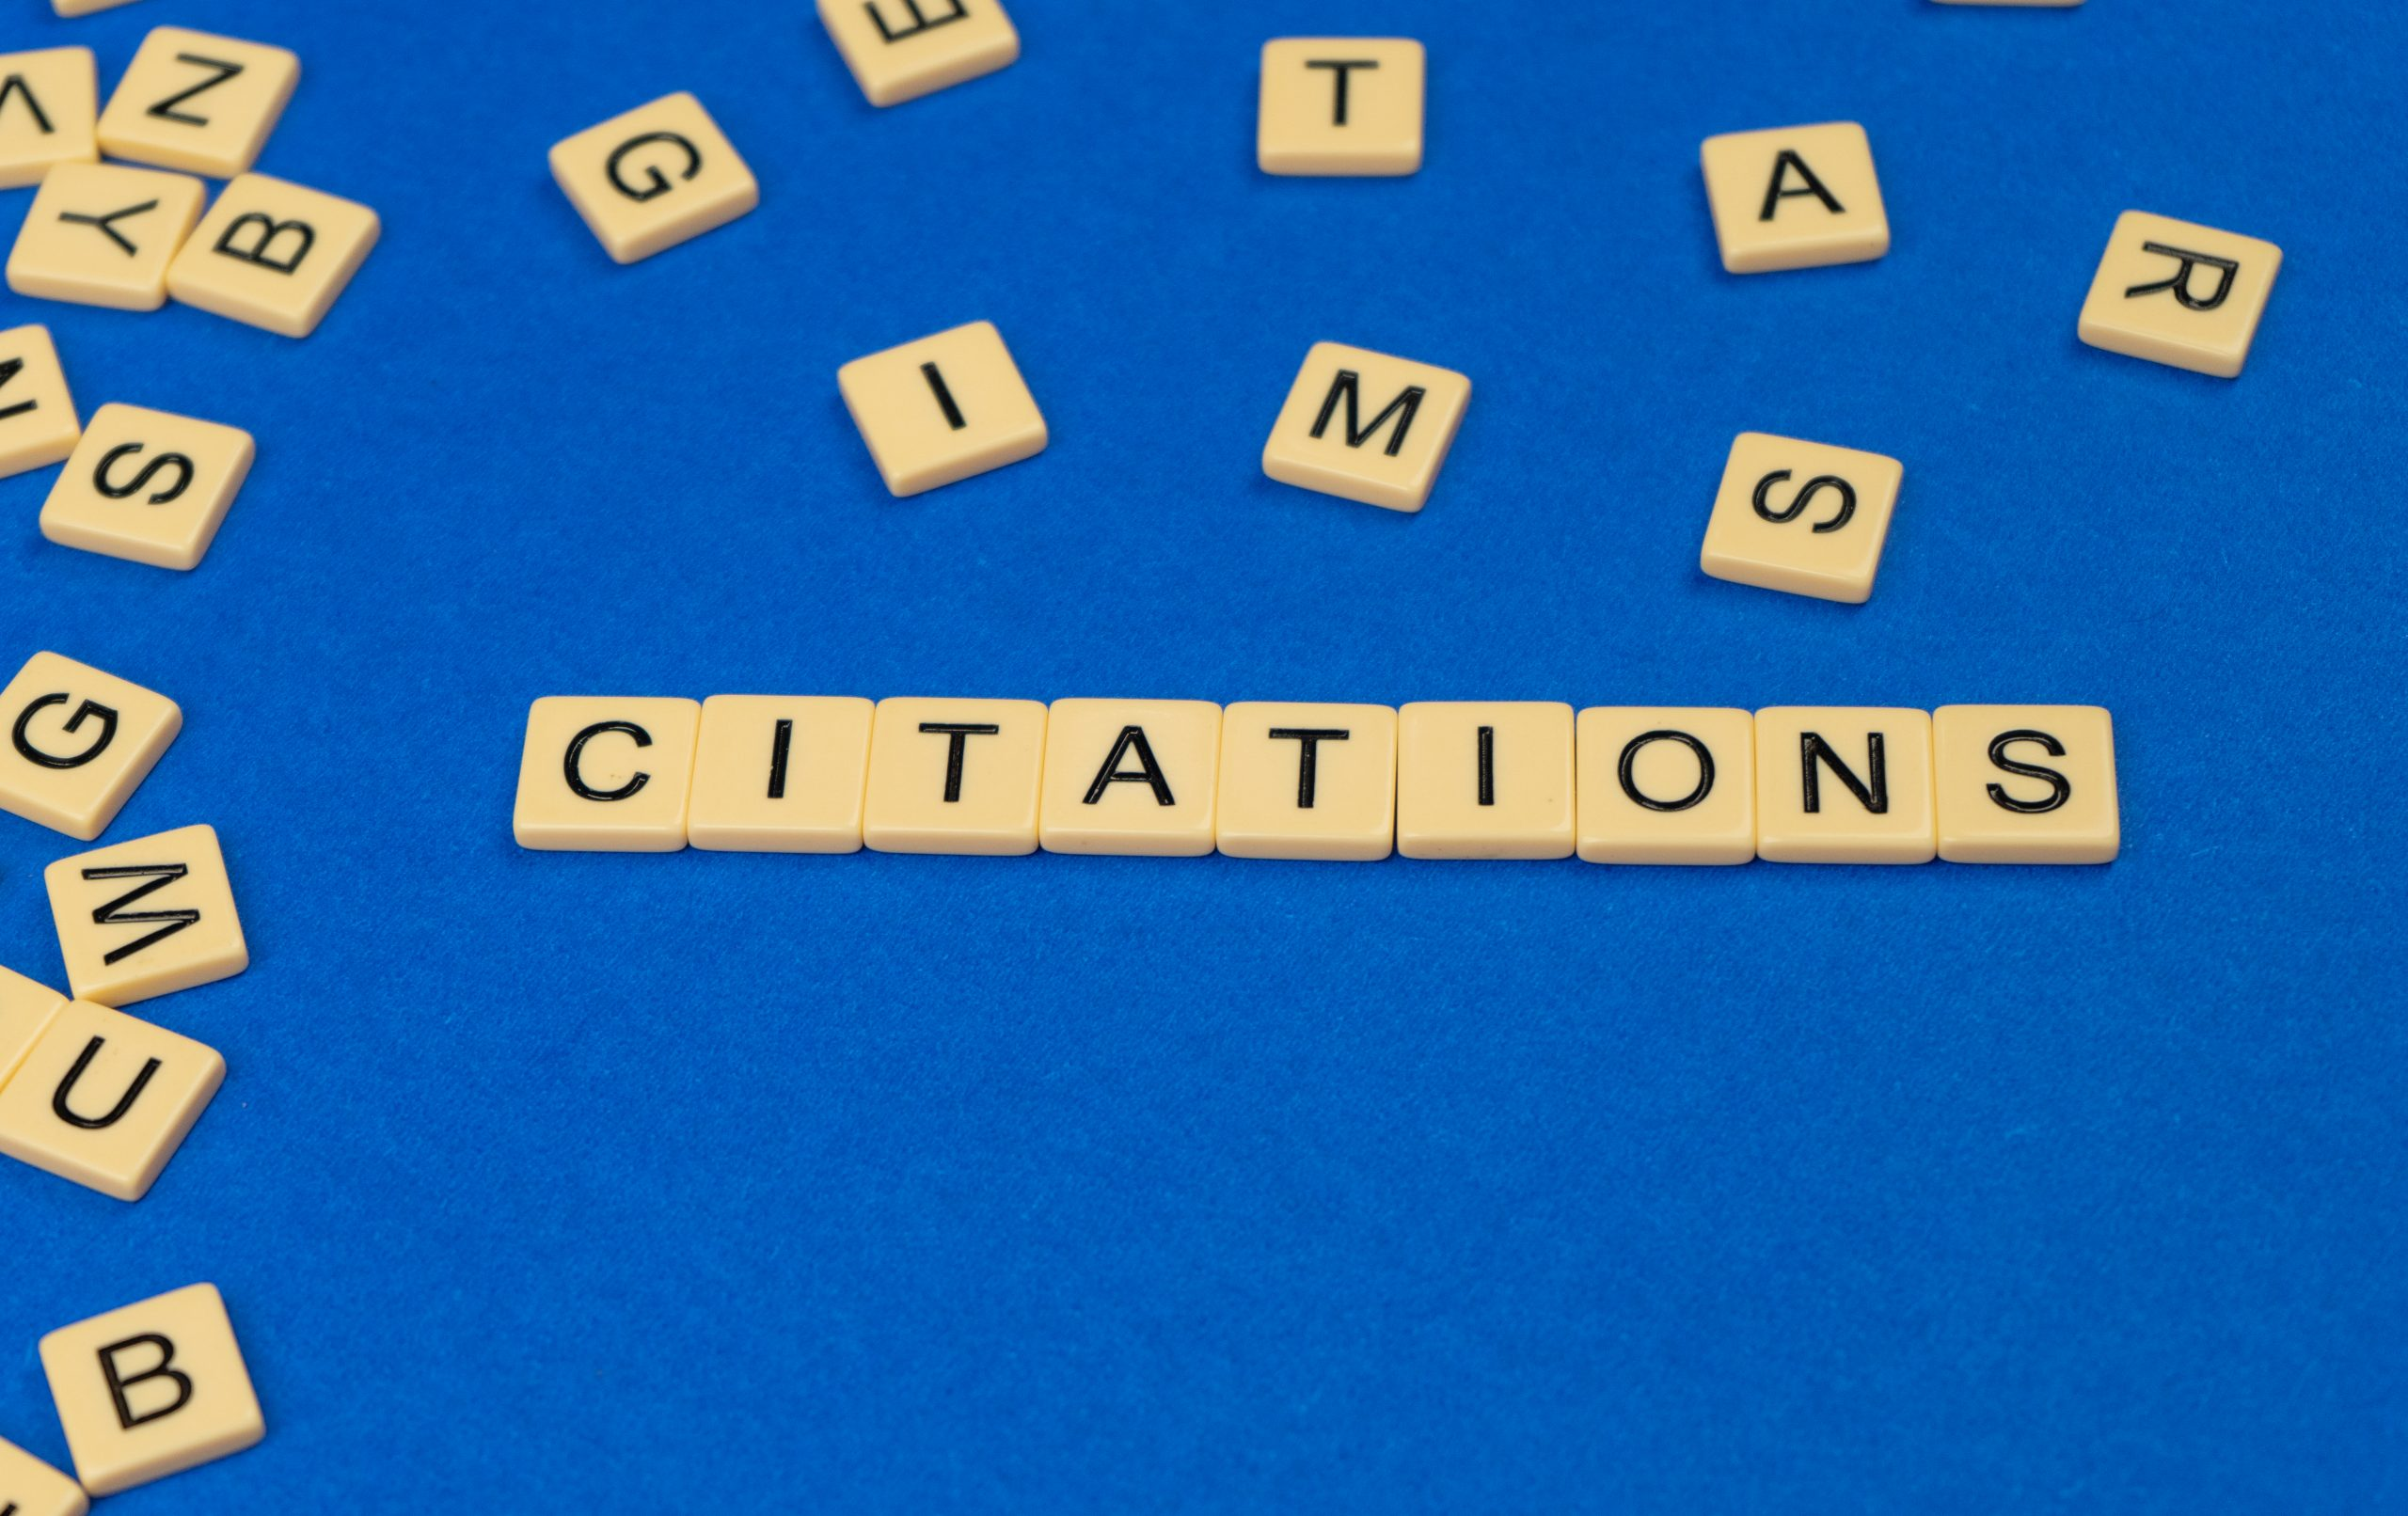 Citations in Word